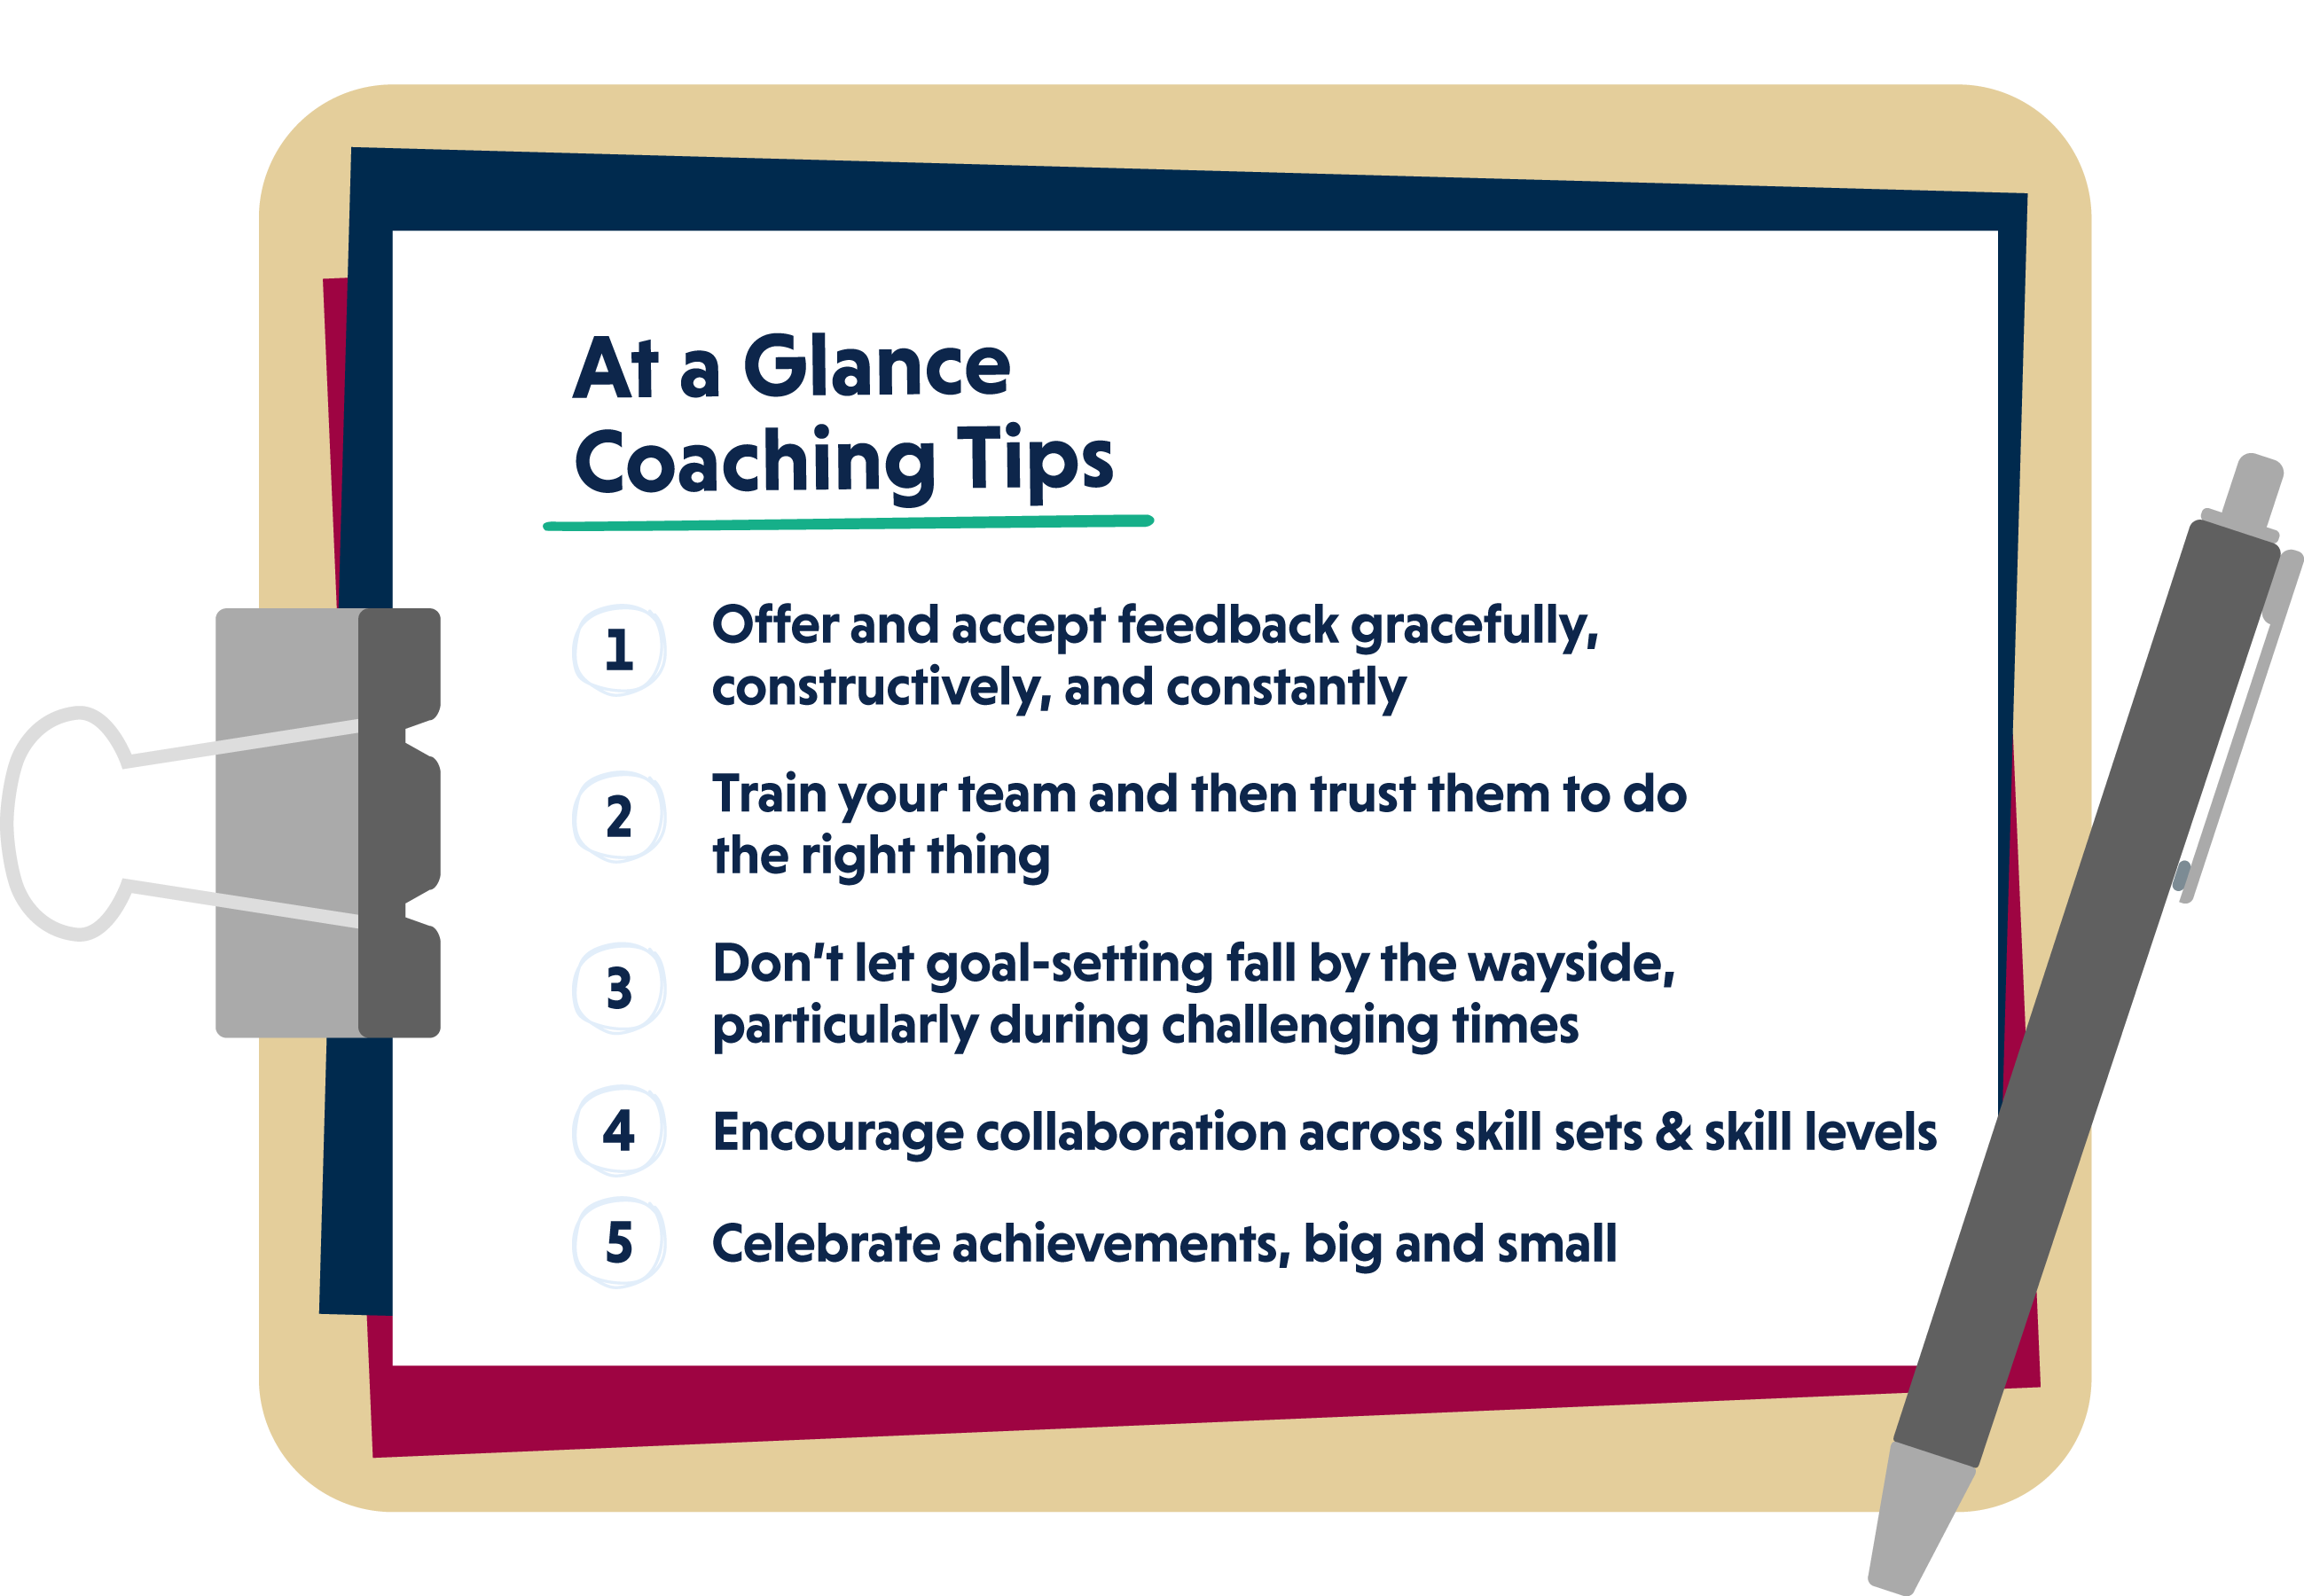 At A Glance Coaching Tips: Offer and accept feedback gracefully, constructively, and constantly. Train your team and then trust them to do the right thing. Don't let goal-setting fall by the wayside, particularly during challenging times. Encourage collaboration across skill sets and skill levels. Celebrate achievements, big and small.